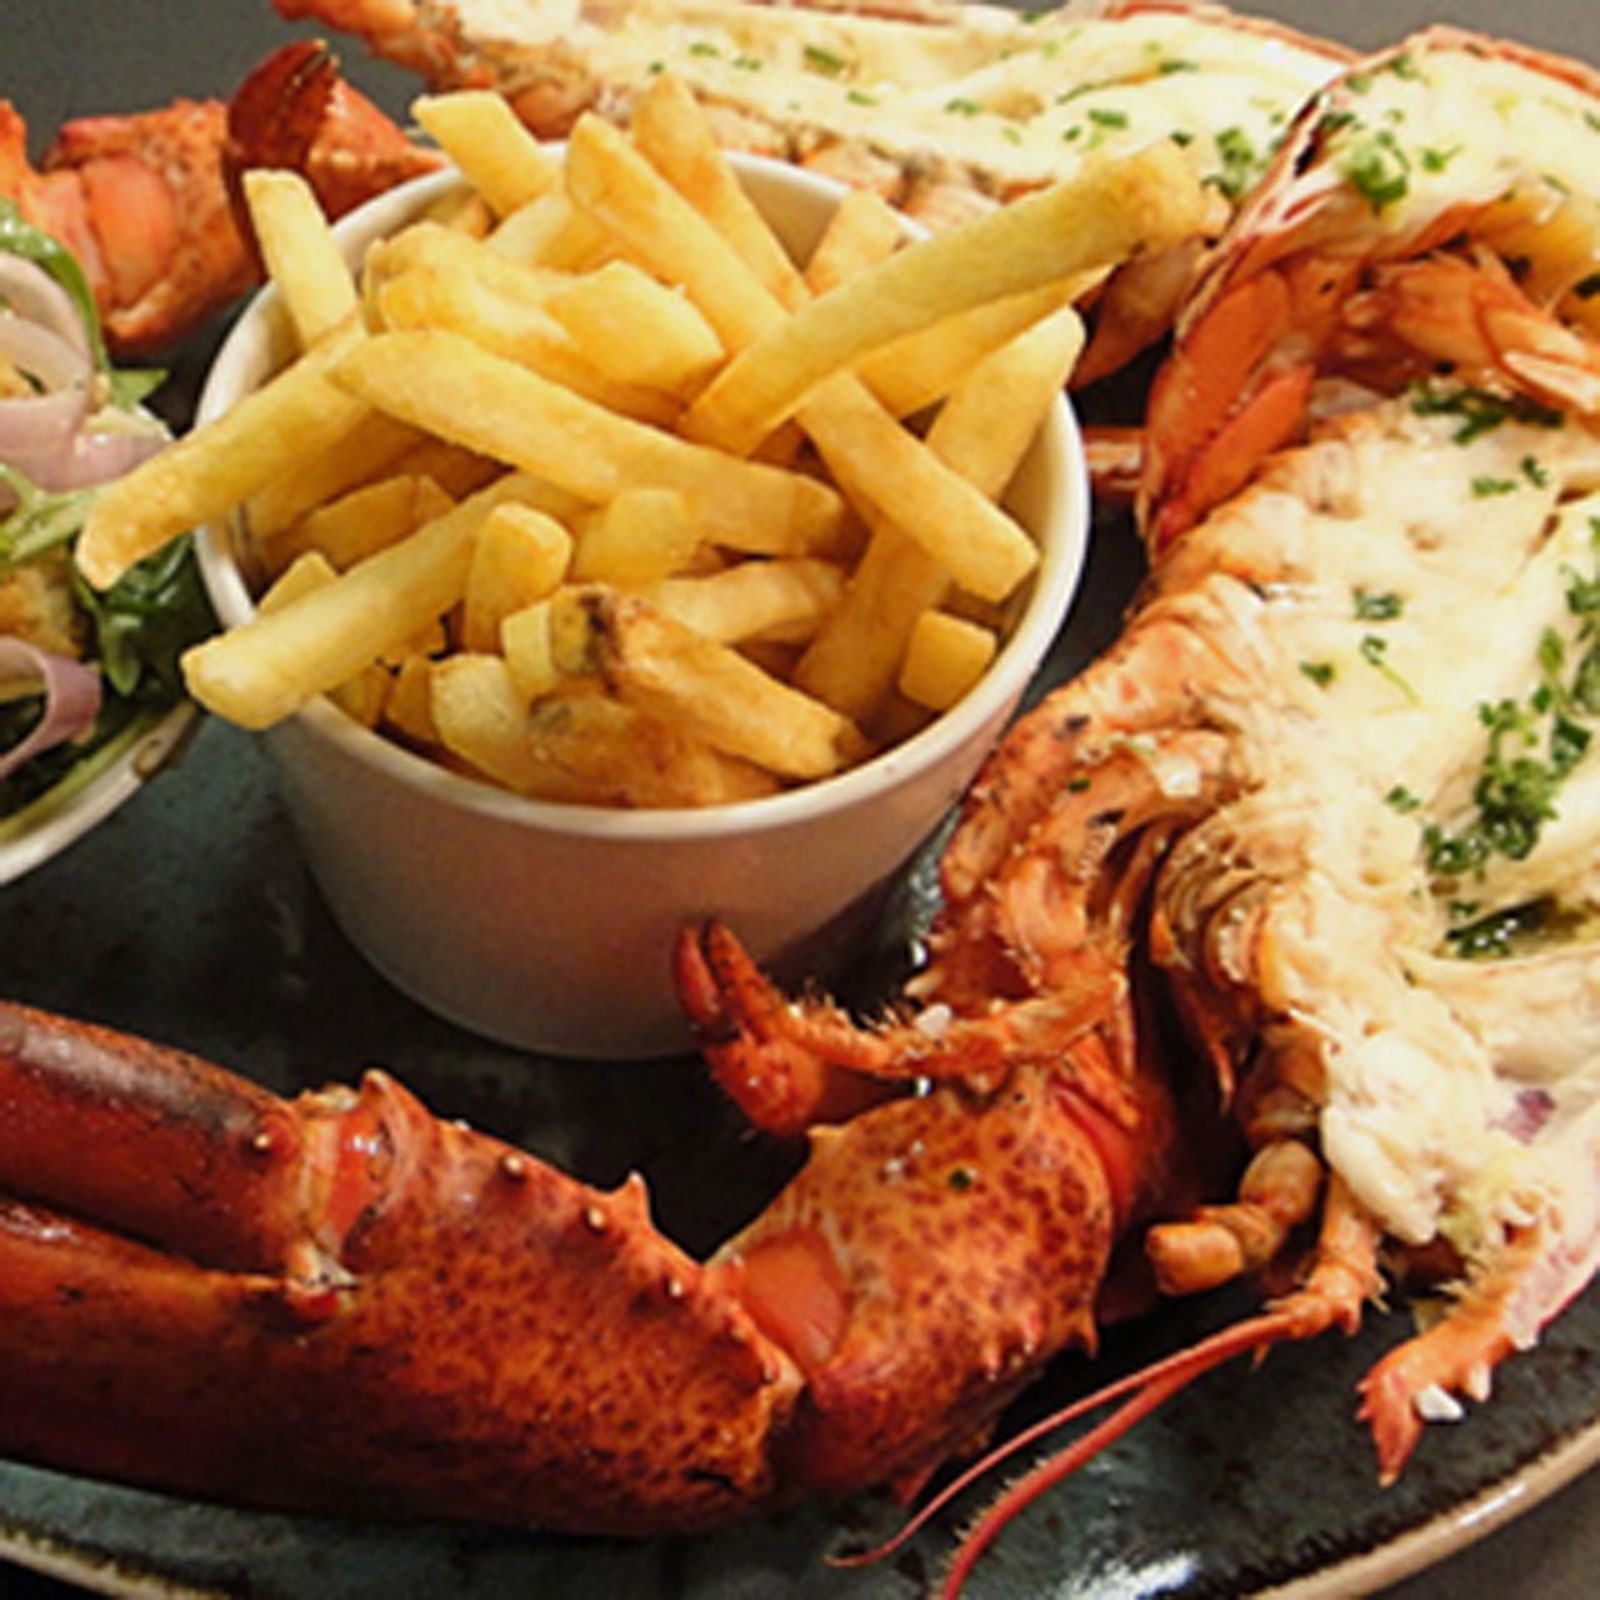 Steak & Lobster Manchester - Manchester